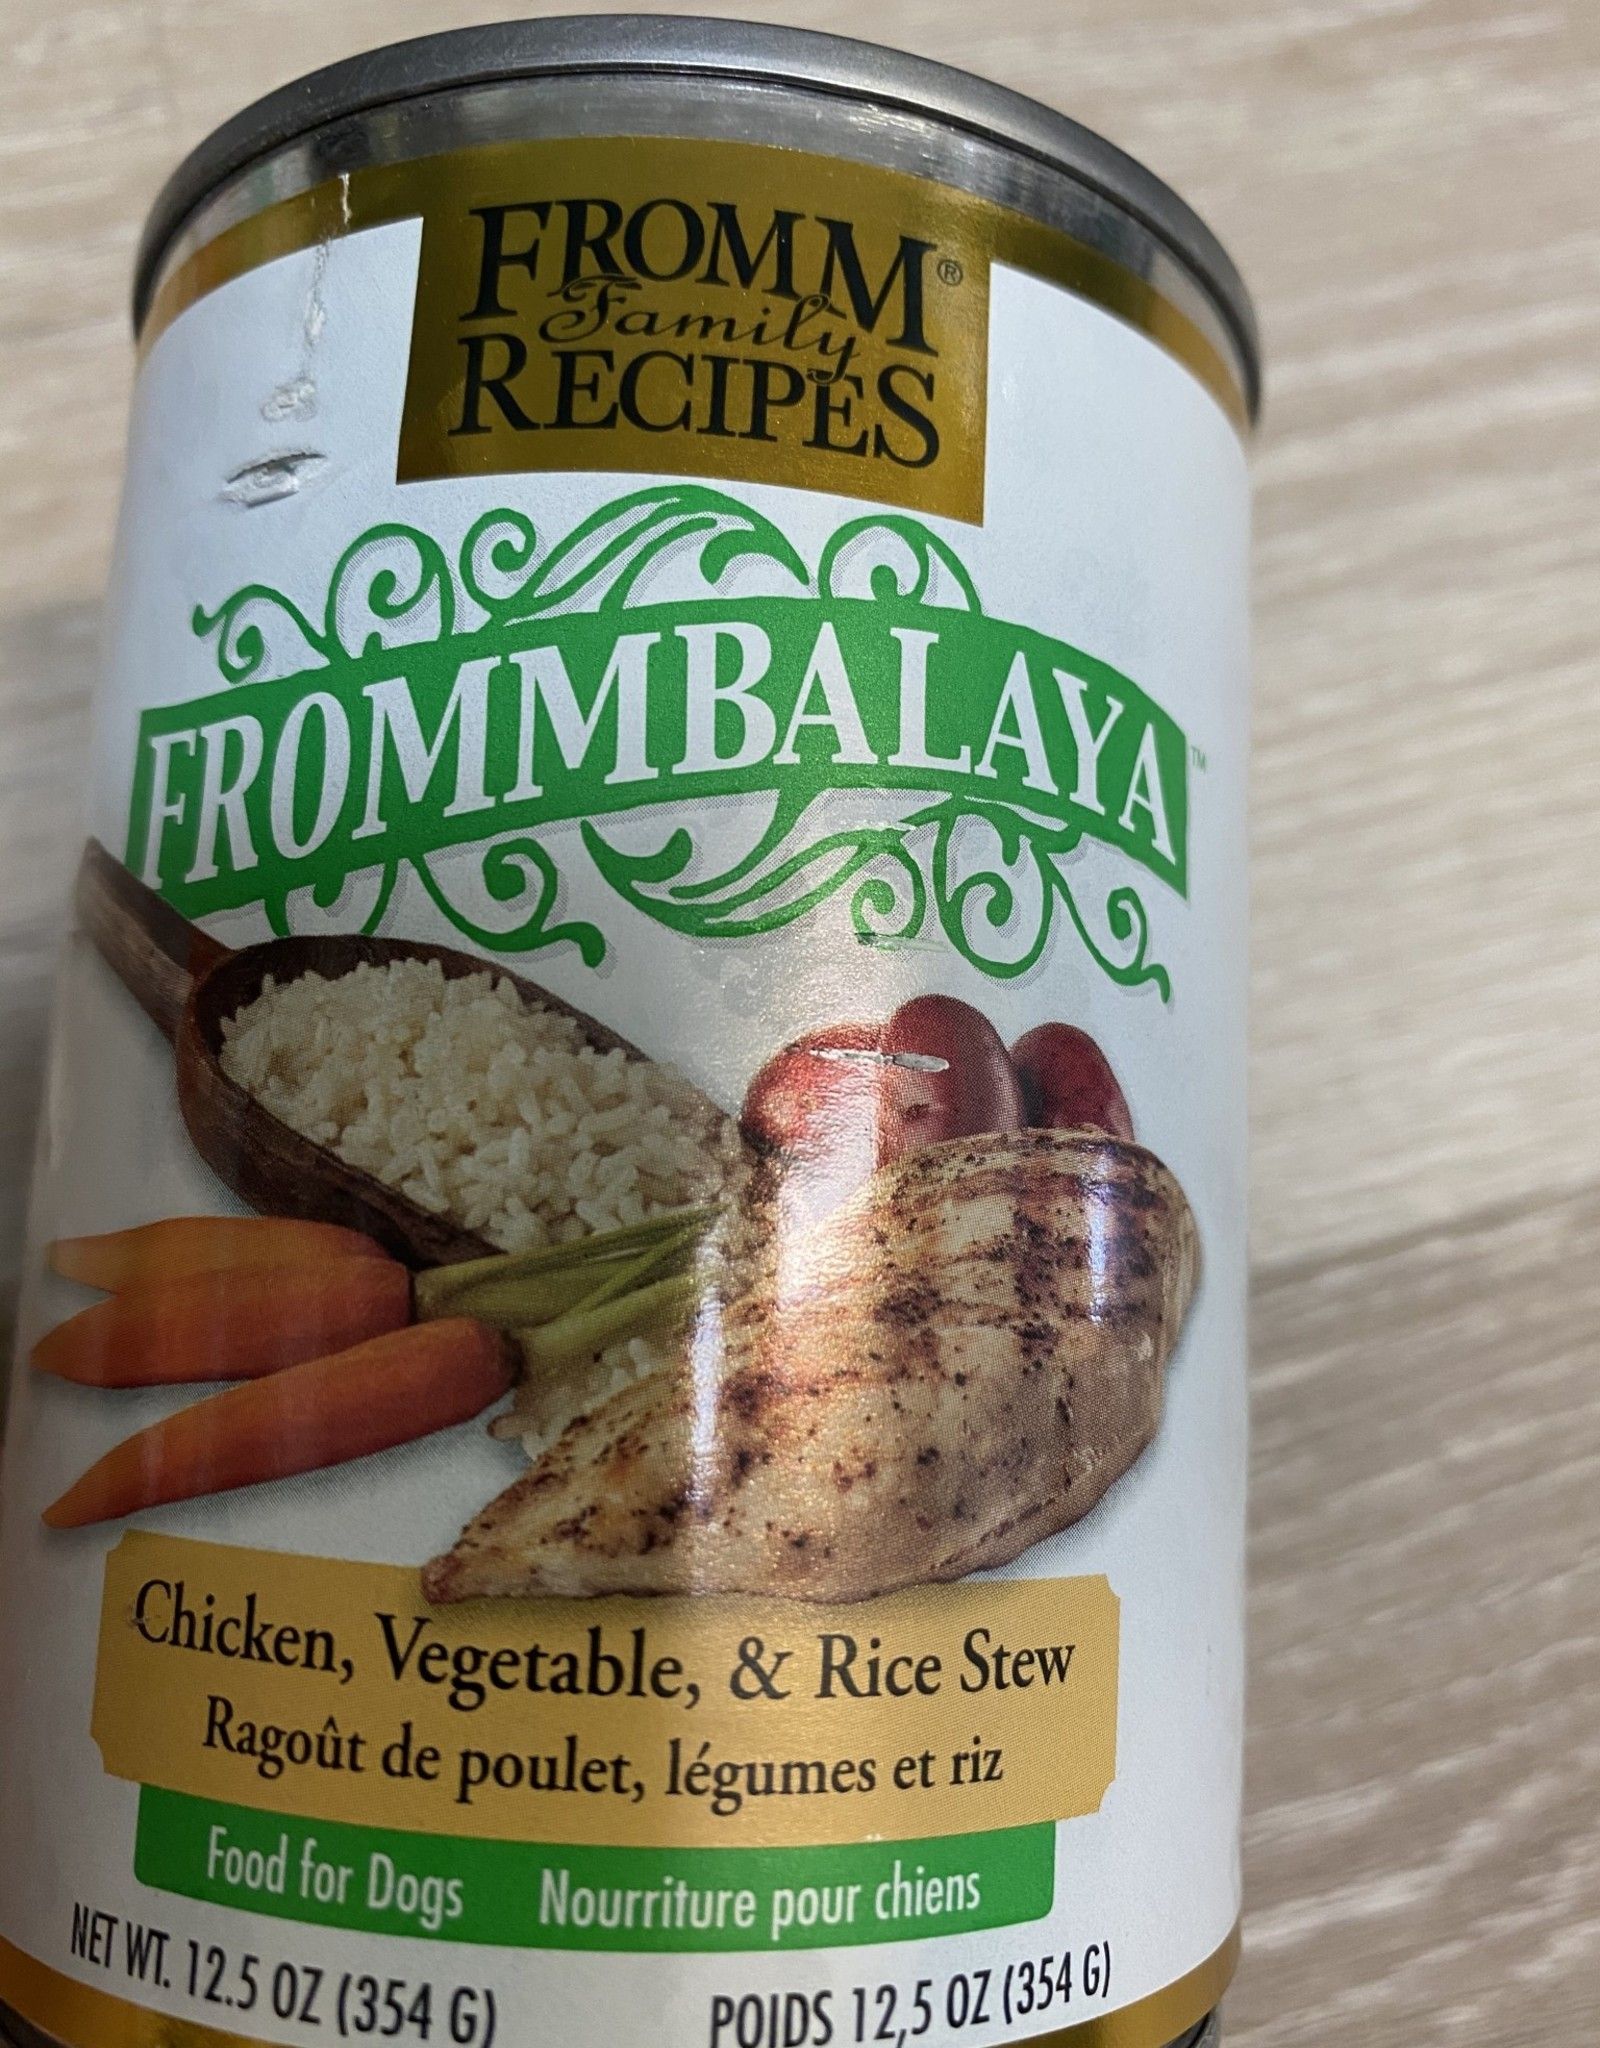 Fromm Frommbalaya Chicken & Rice 12.5oz